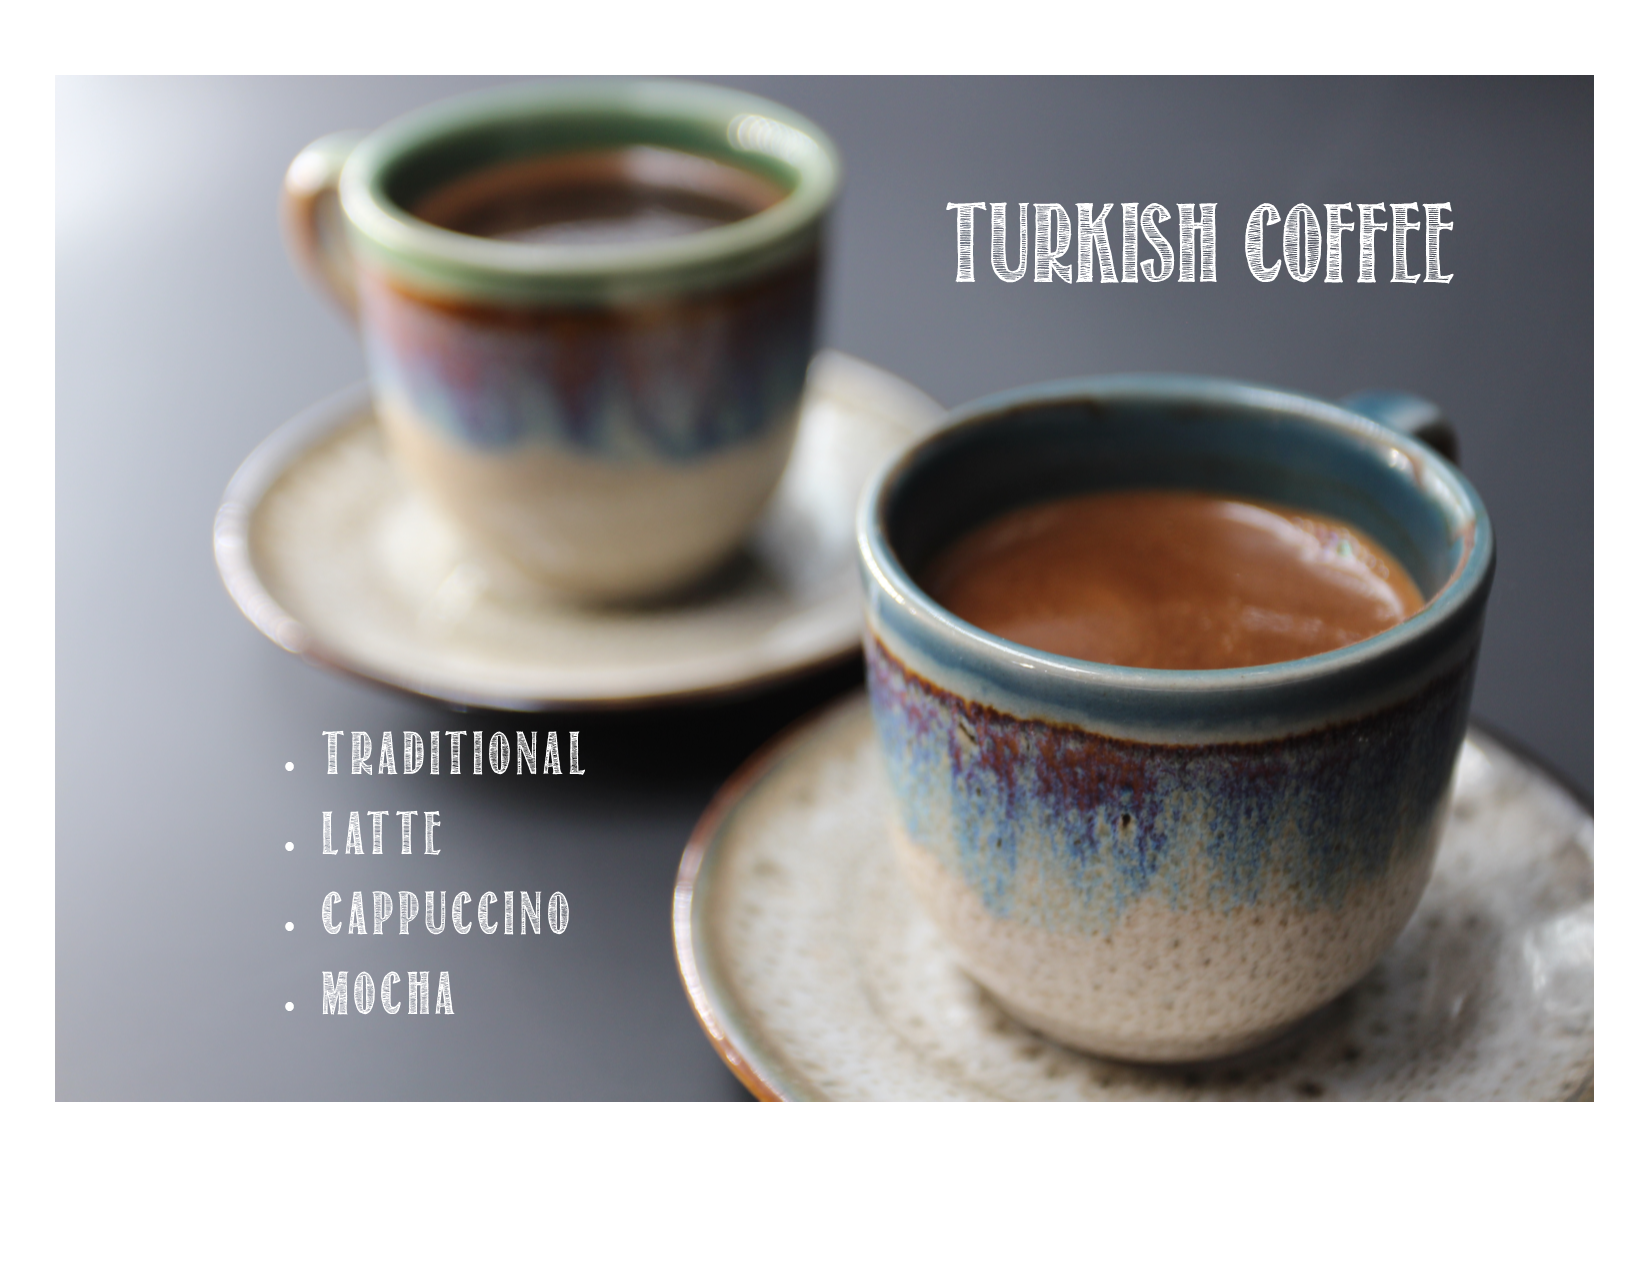 TurkishCoffee.png